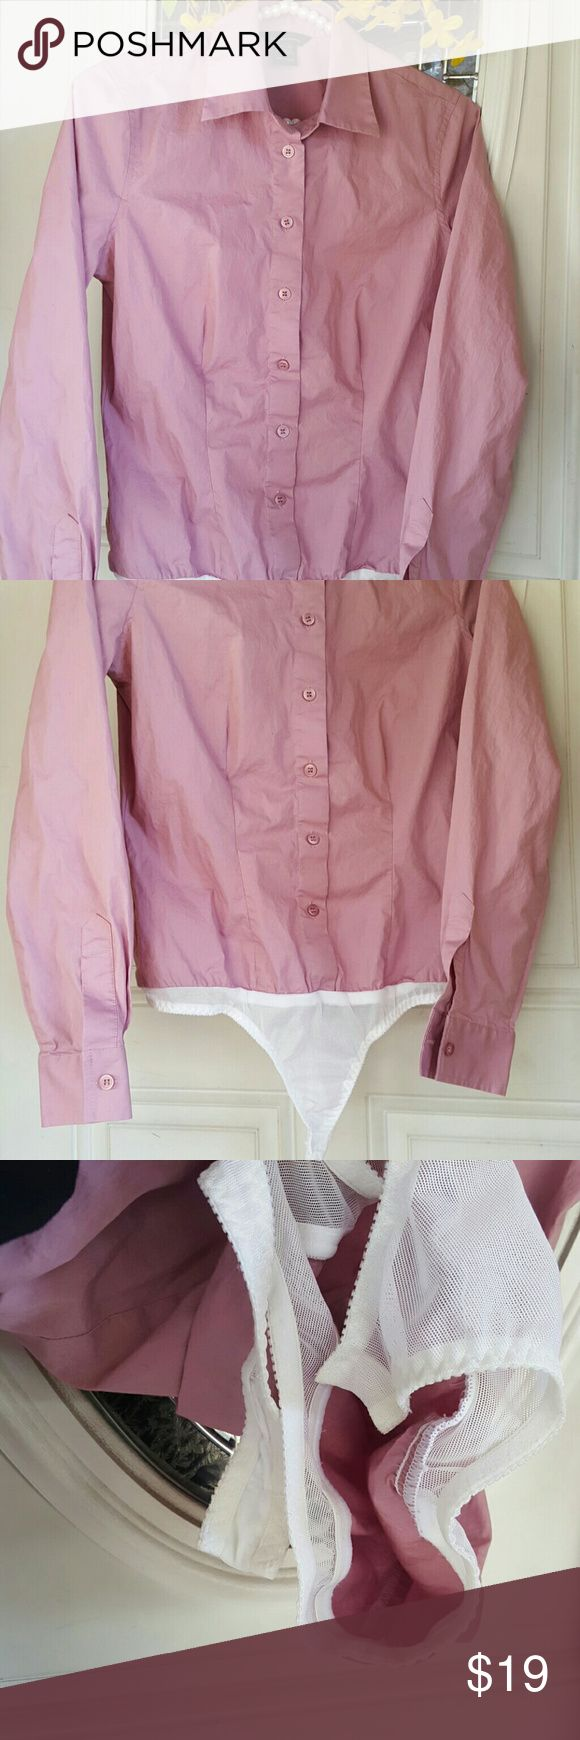 ⓂVictoria Secret Moda international Bodysuit shirt ⓂVictoria Secret Bodysuit shirt Lilac/ Lavender color, long sleeve button down shirt with attached Bodysuit mesh panty snap on button,  so shirt won't come untucked, size Small. In like new condition, no stains no holes. Moda International Tops Button Down Shirts